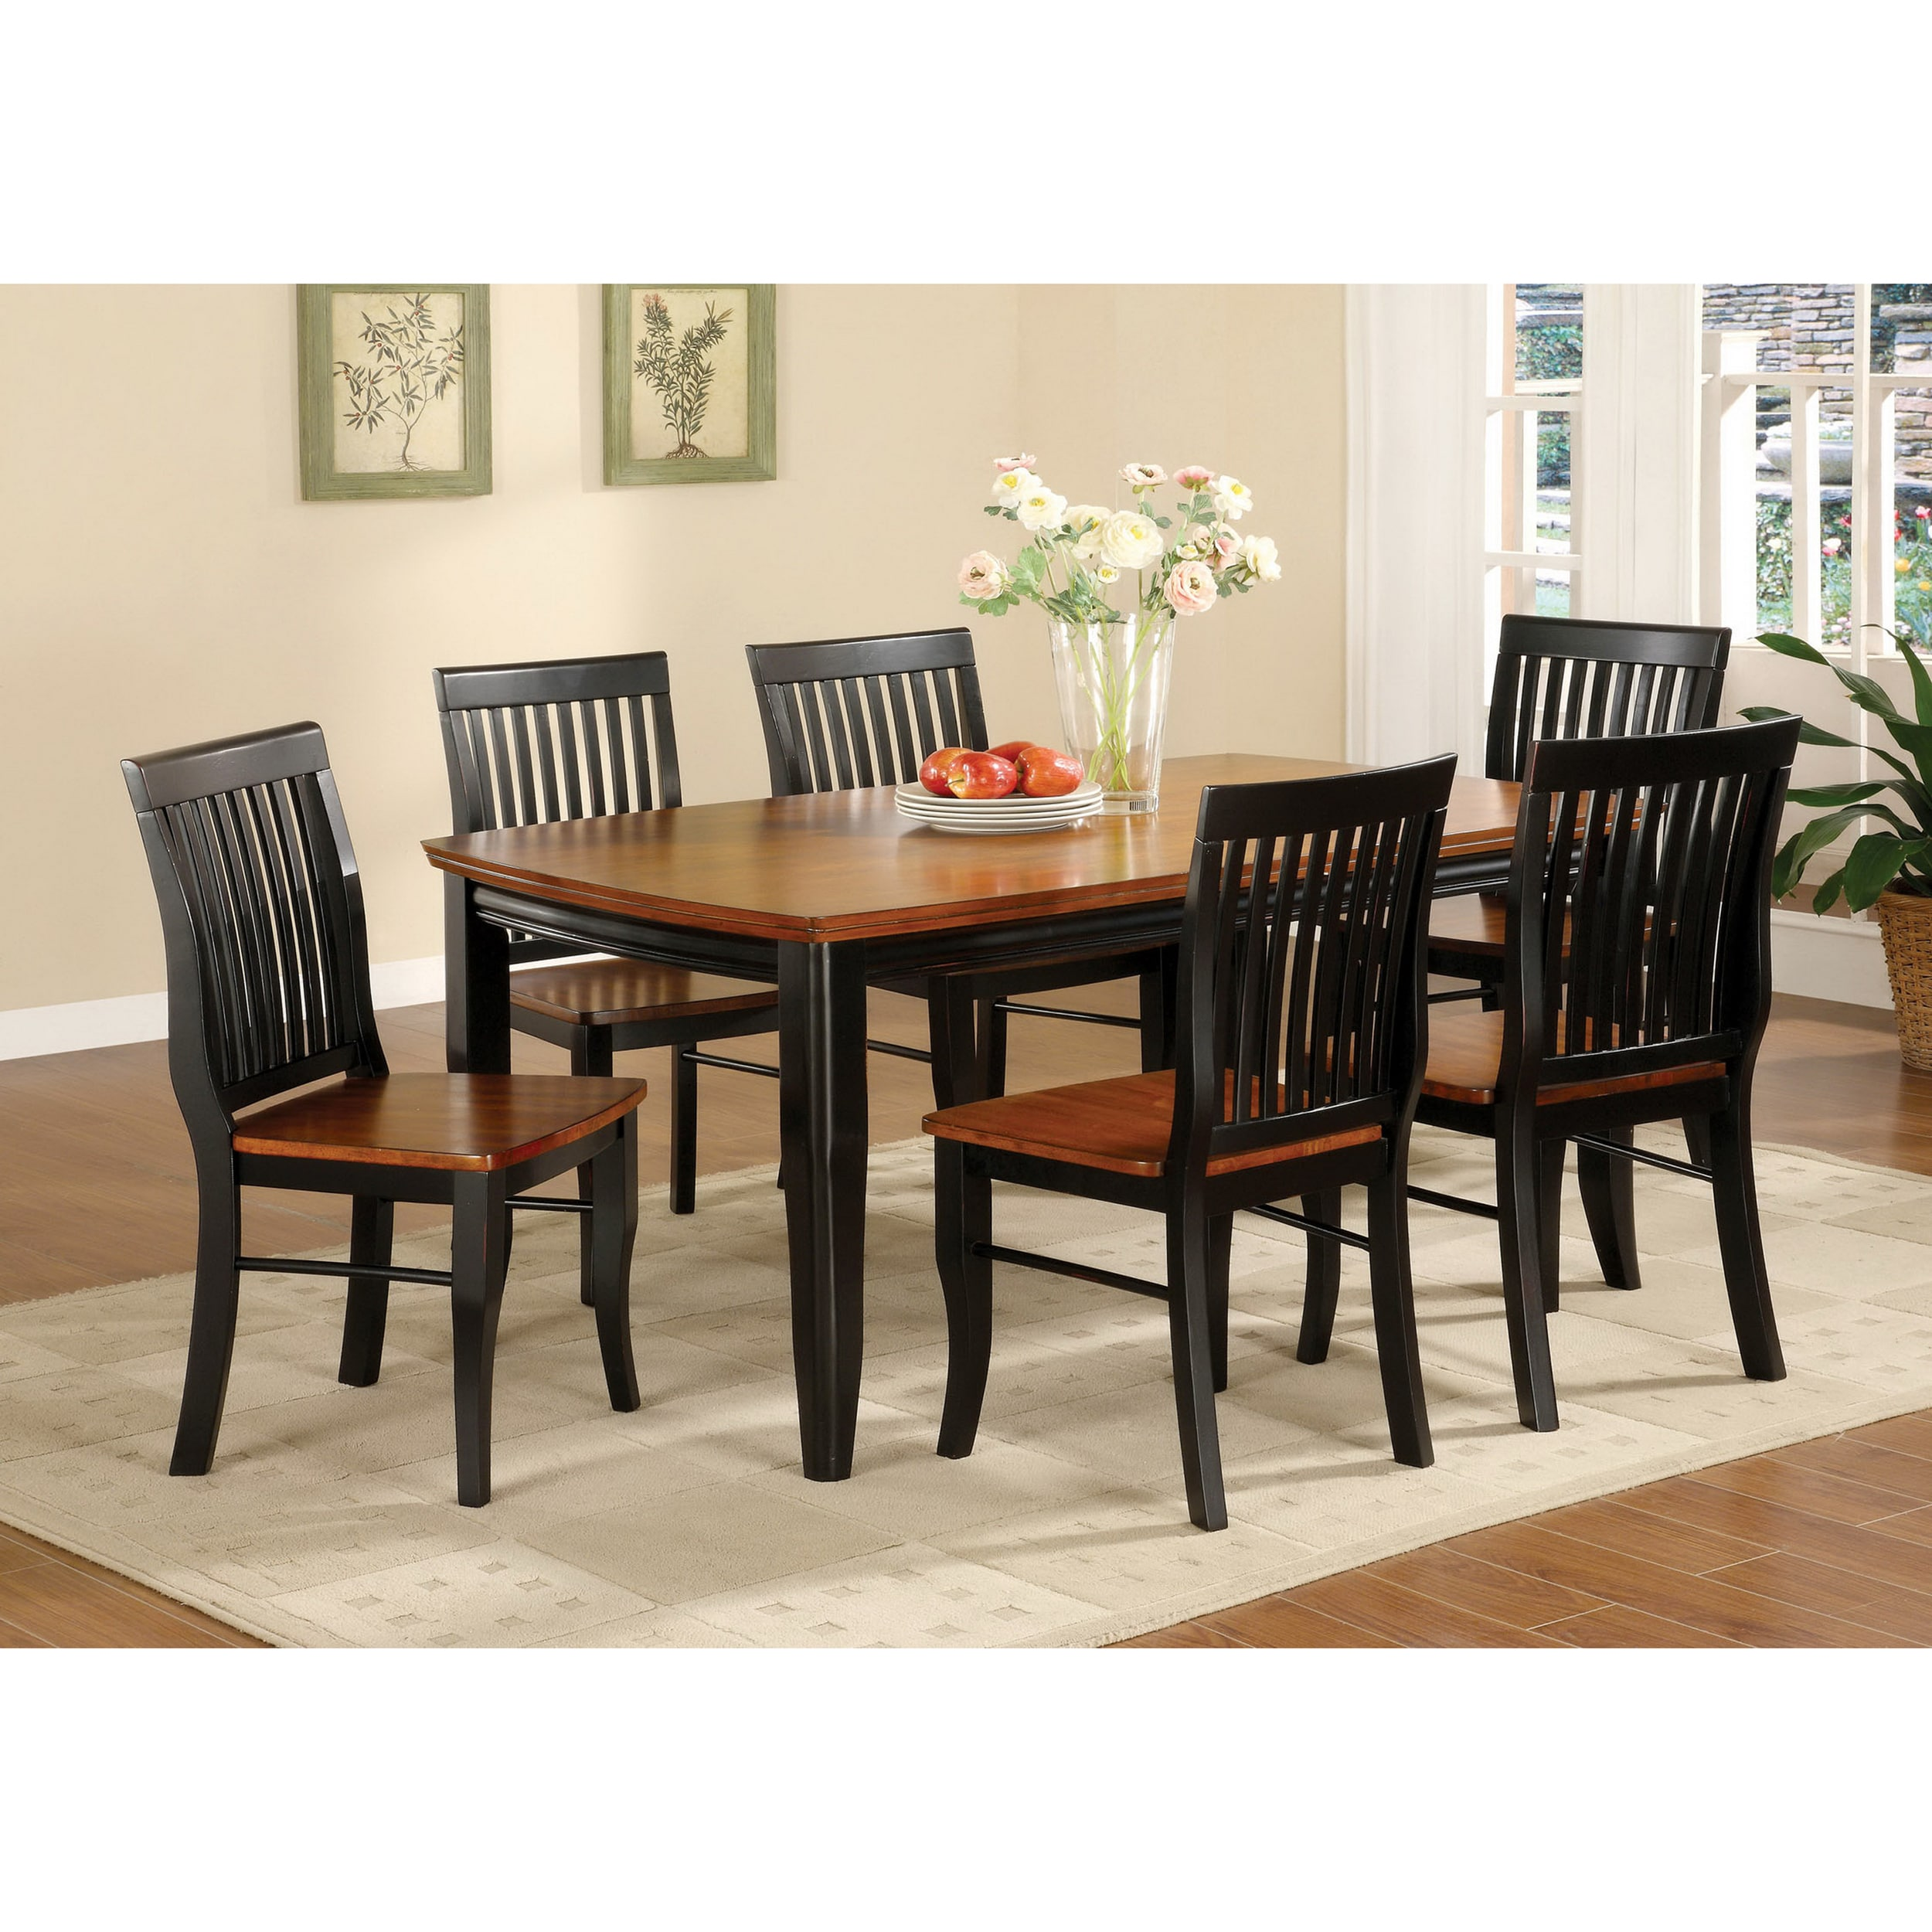 Furniture Of America Burwood Antique Oak Black Wood Dining Table